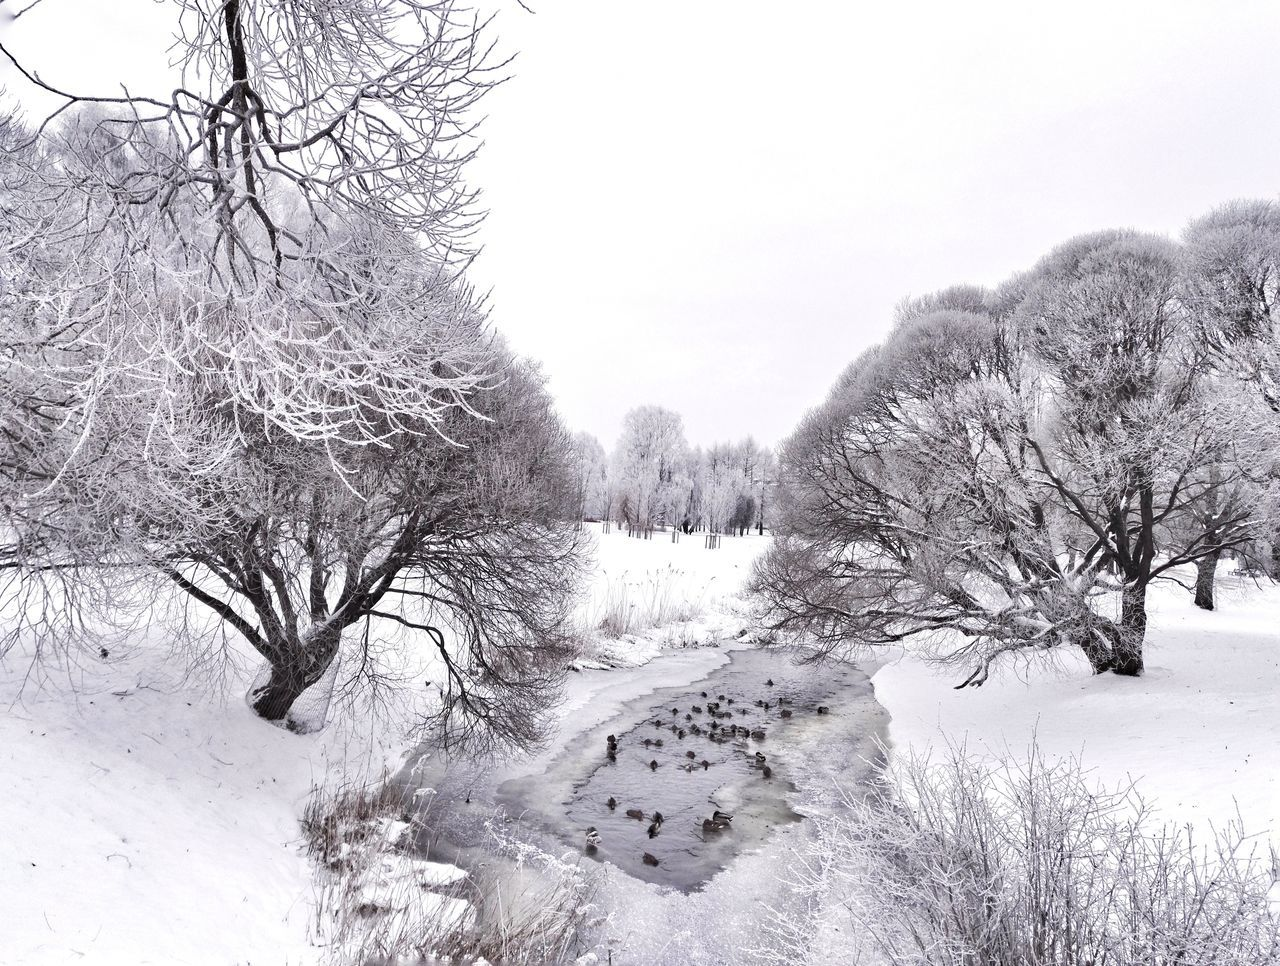 Tree Nature Tranquility Day City Enjoying Life Hello World Snow Cold Temperature Winter Black And White Beauty In Nature Cityscape Water_collection Water Weather Ducks In Water Standing Water